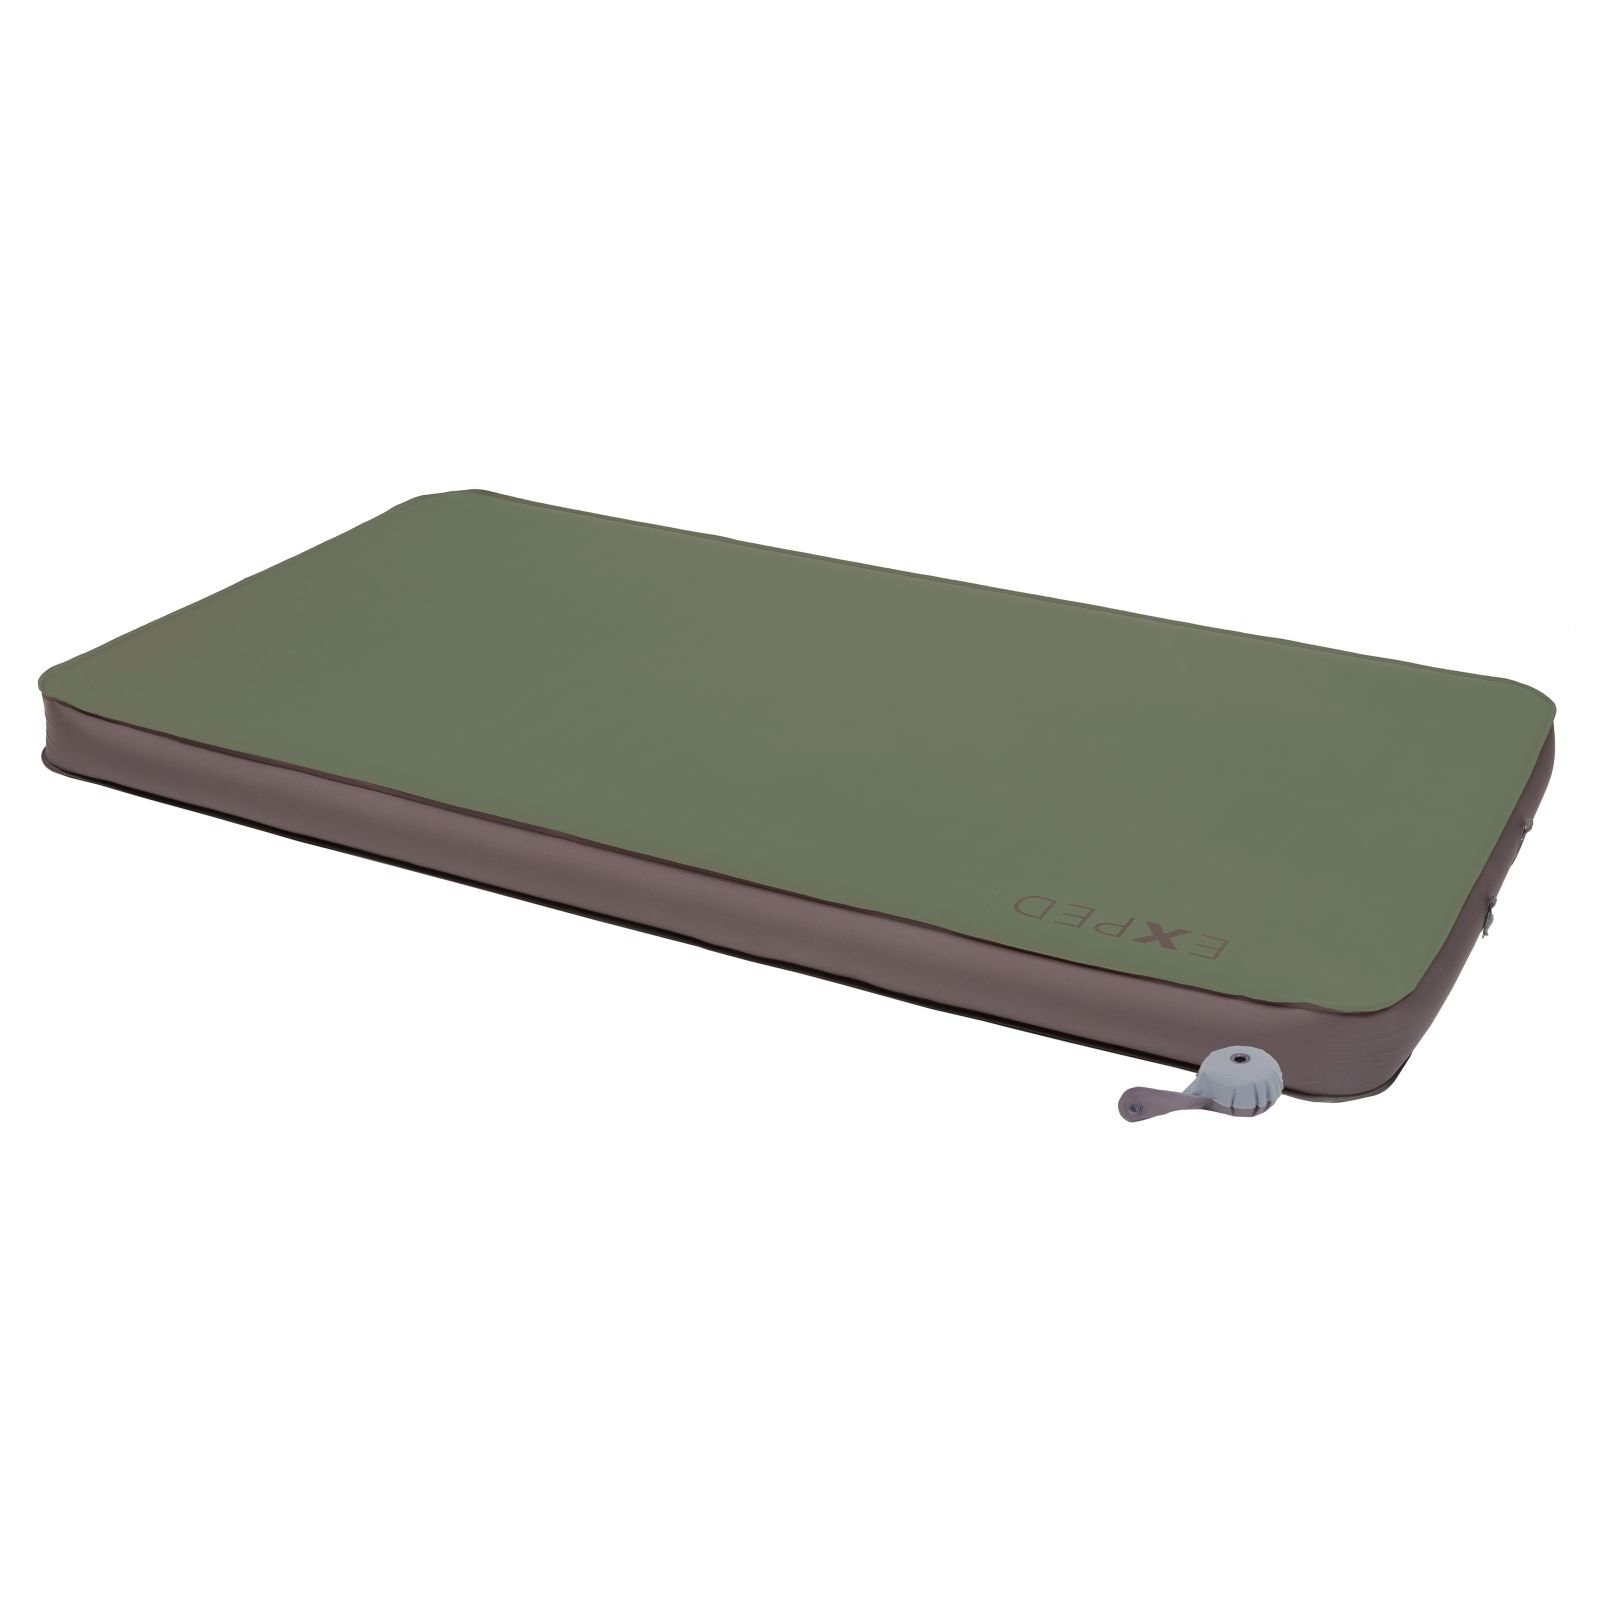 Exped MegaMat Duo 10 Self-Inflating Sleeping Pad, Green, Medium by Exped